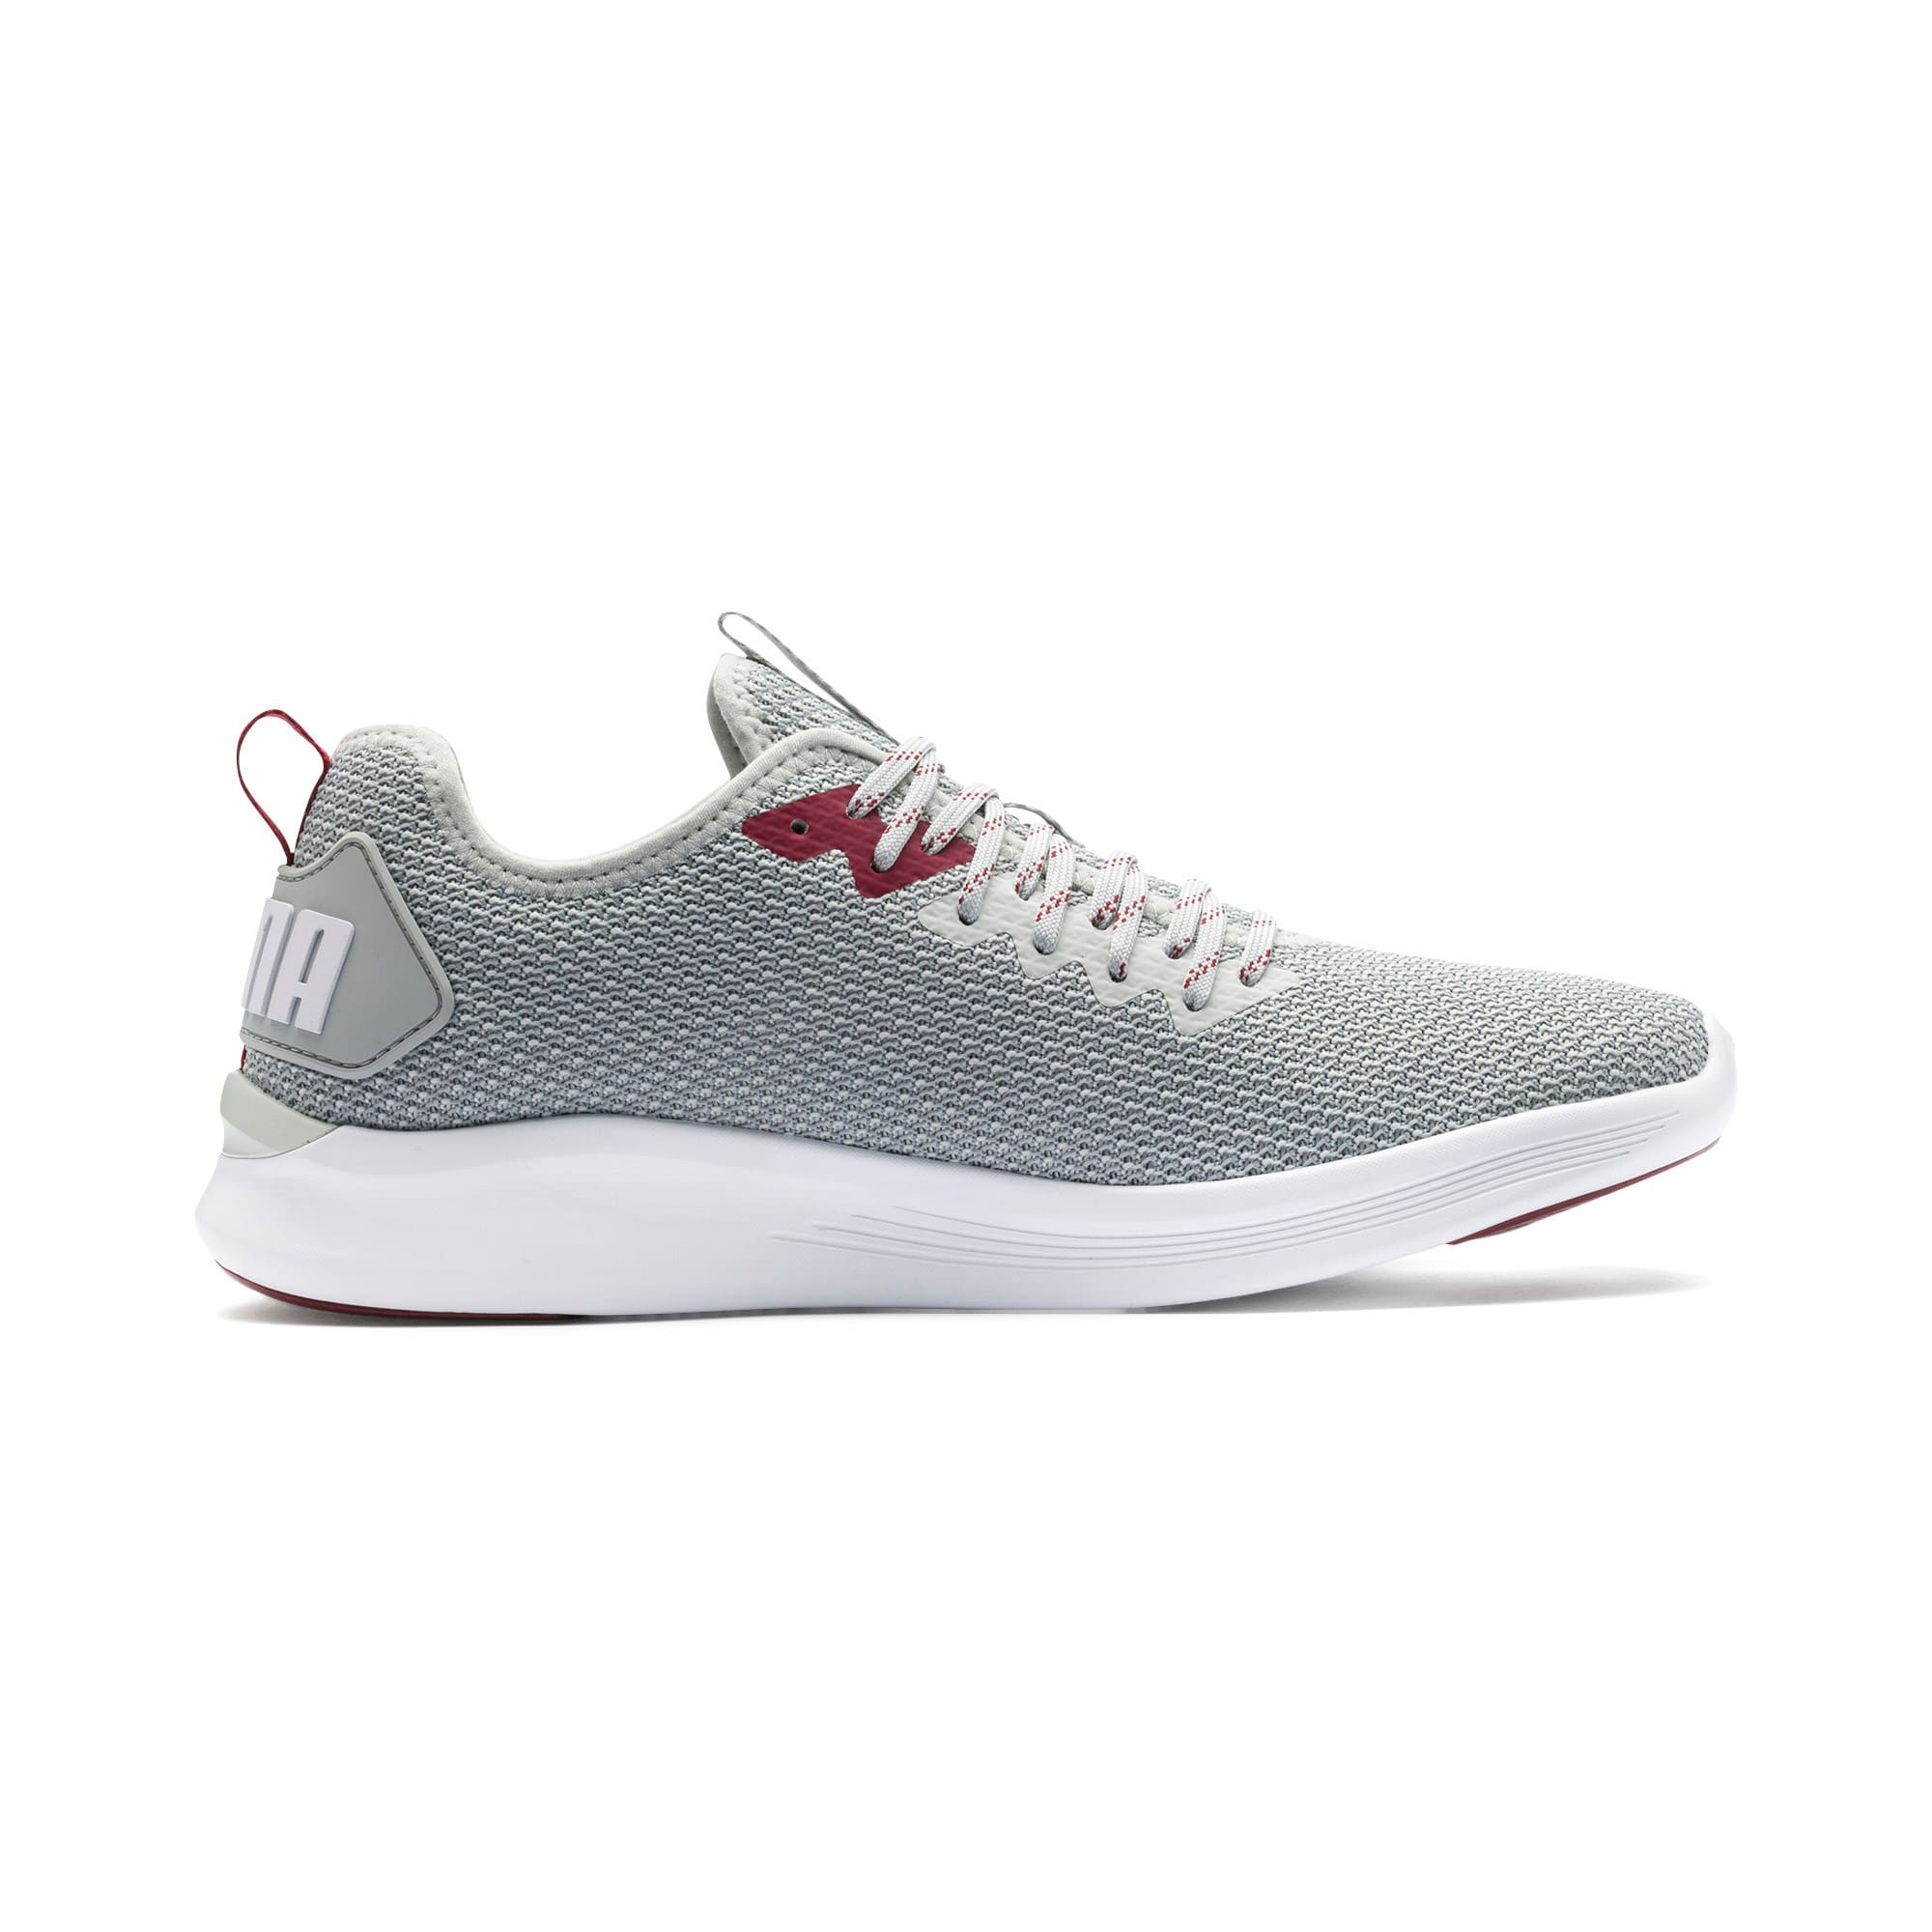 Thumbnail 7 of IGNITE Flash FS Men's Running Shoes, High Rise-Glacier Gray-White, medium-IND